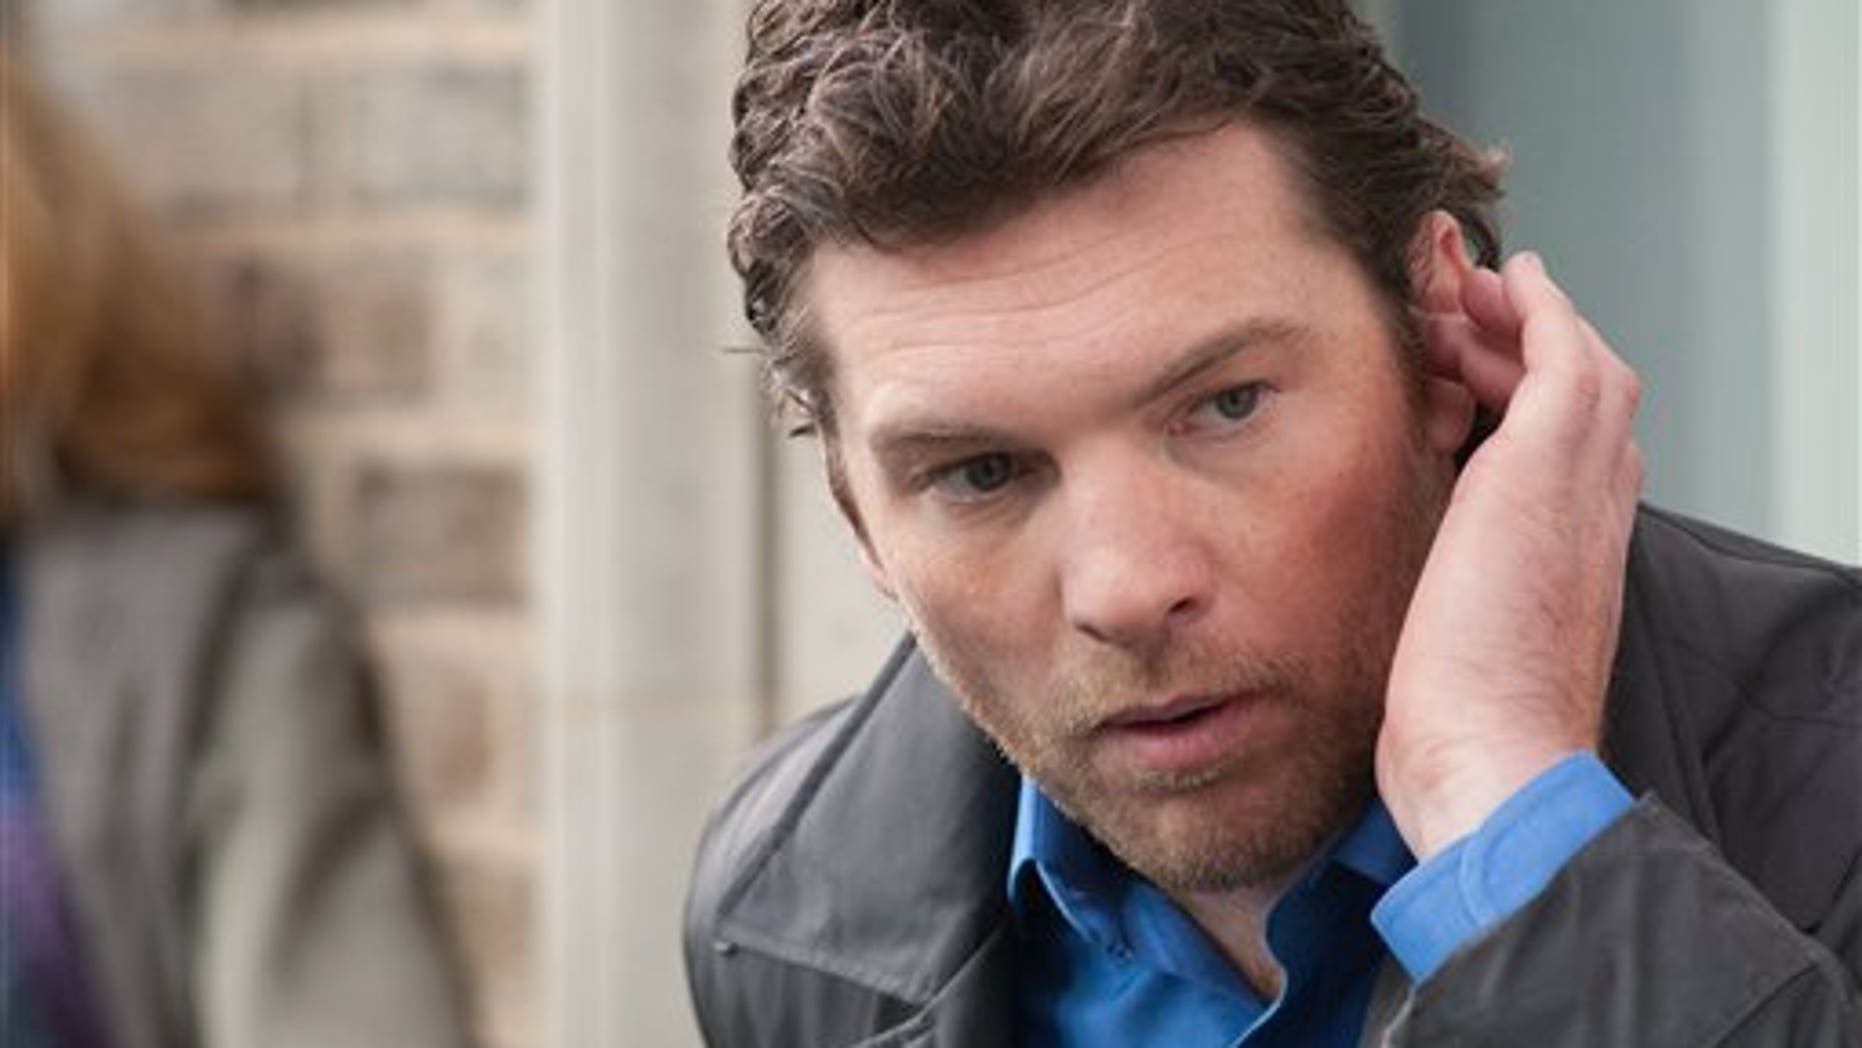 """In this film image released by Summit Entertainment, Sam Worthington is shown in a scene from """"Man on a Ledge."""" (AP Photo/Summit Entertainment, Myles Aronowitz)"""